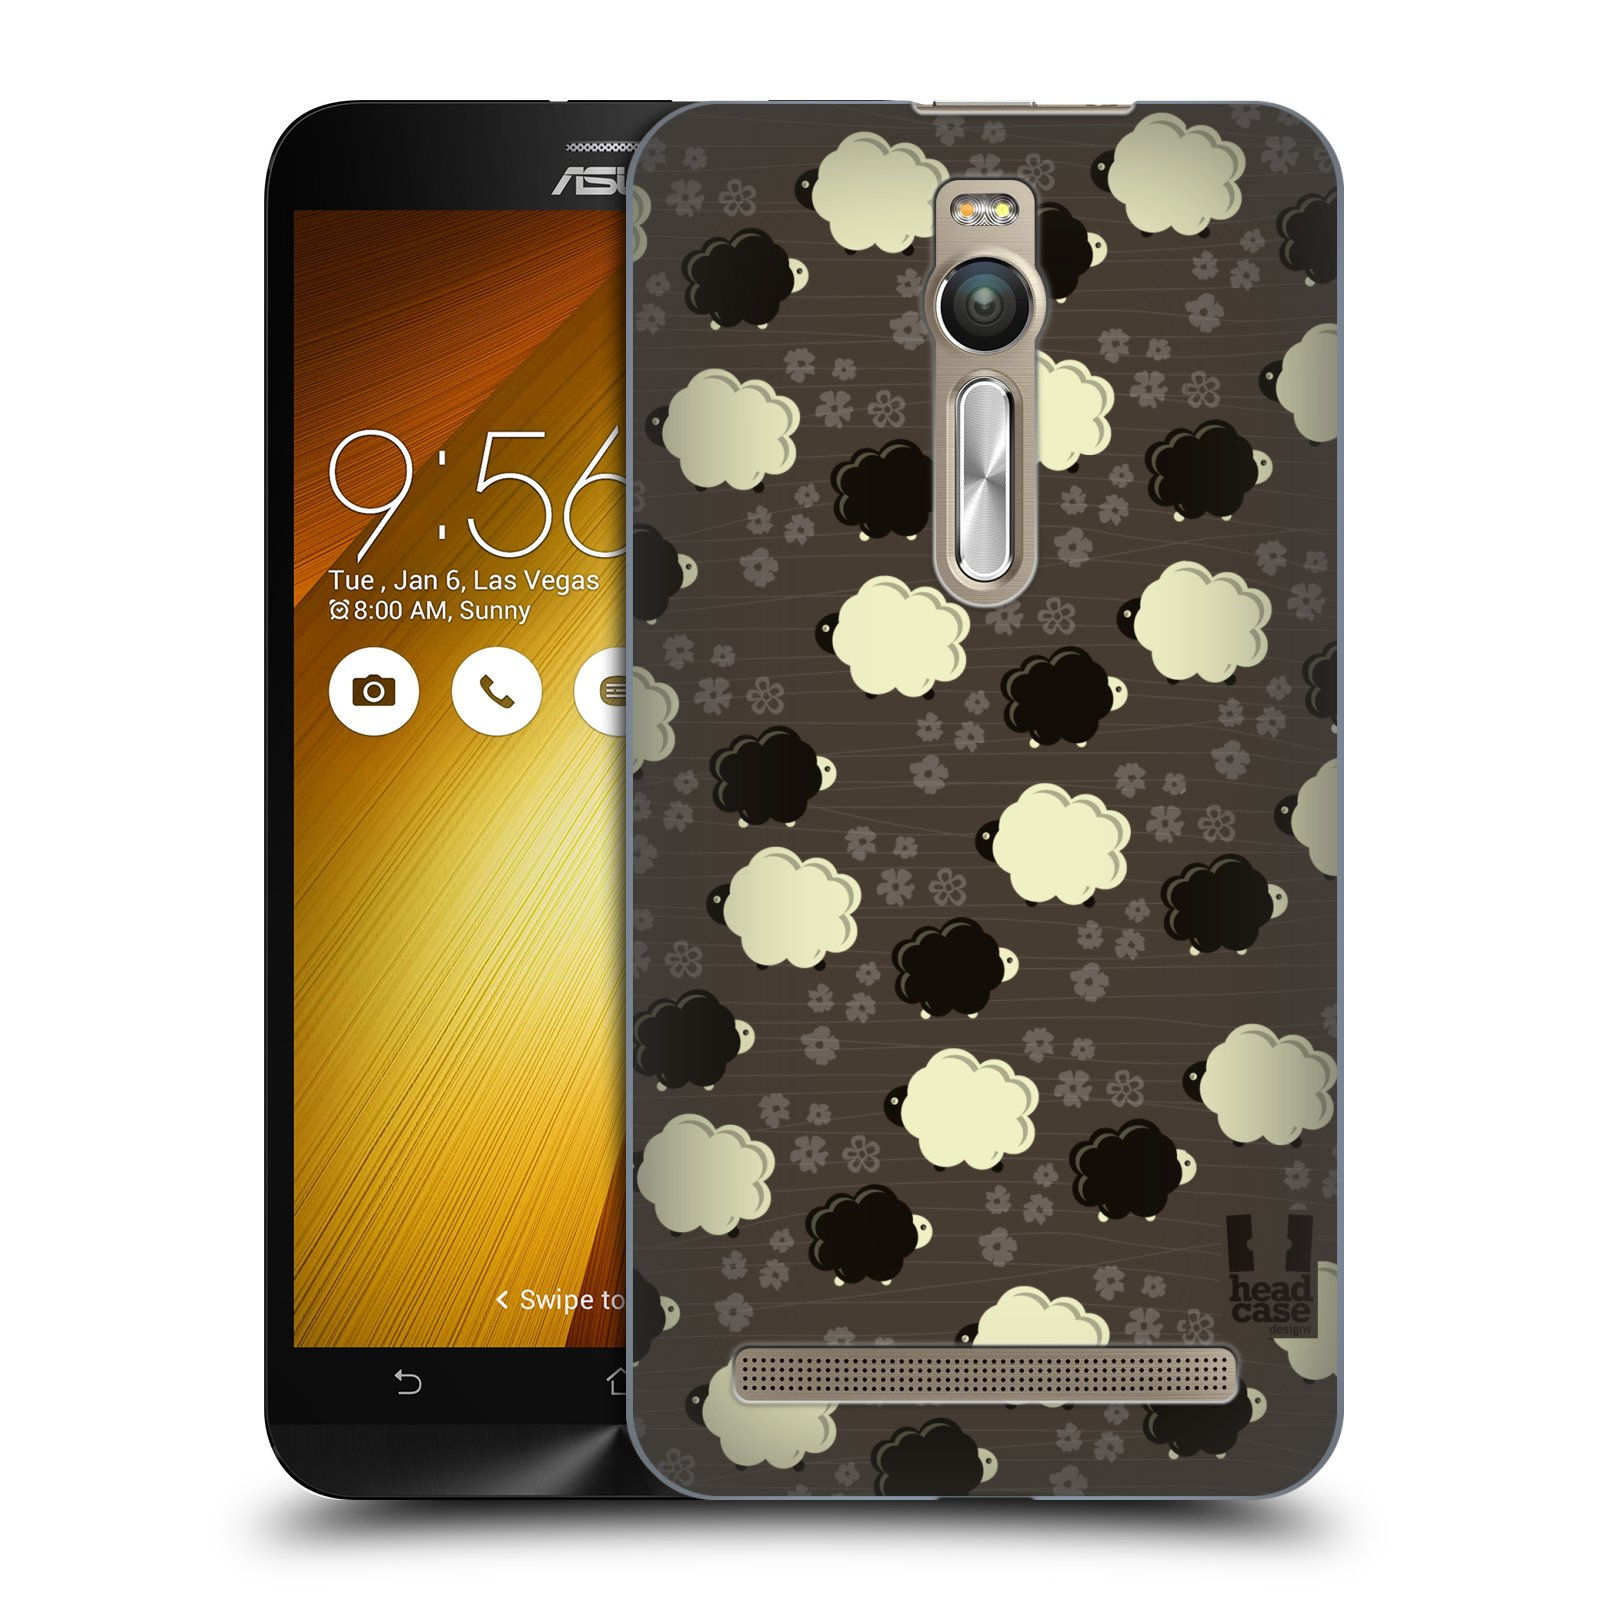 HEAD CASE DESIGNS ANIMAL PATTERN HARD BACK CASE FOR ONEPLUS ASUS AMAZON